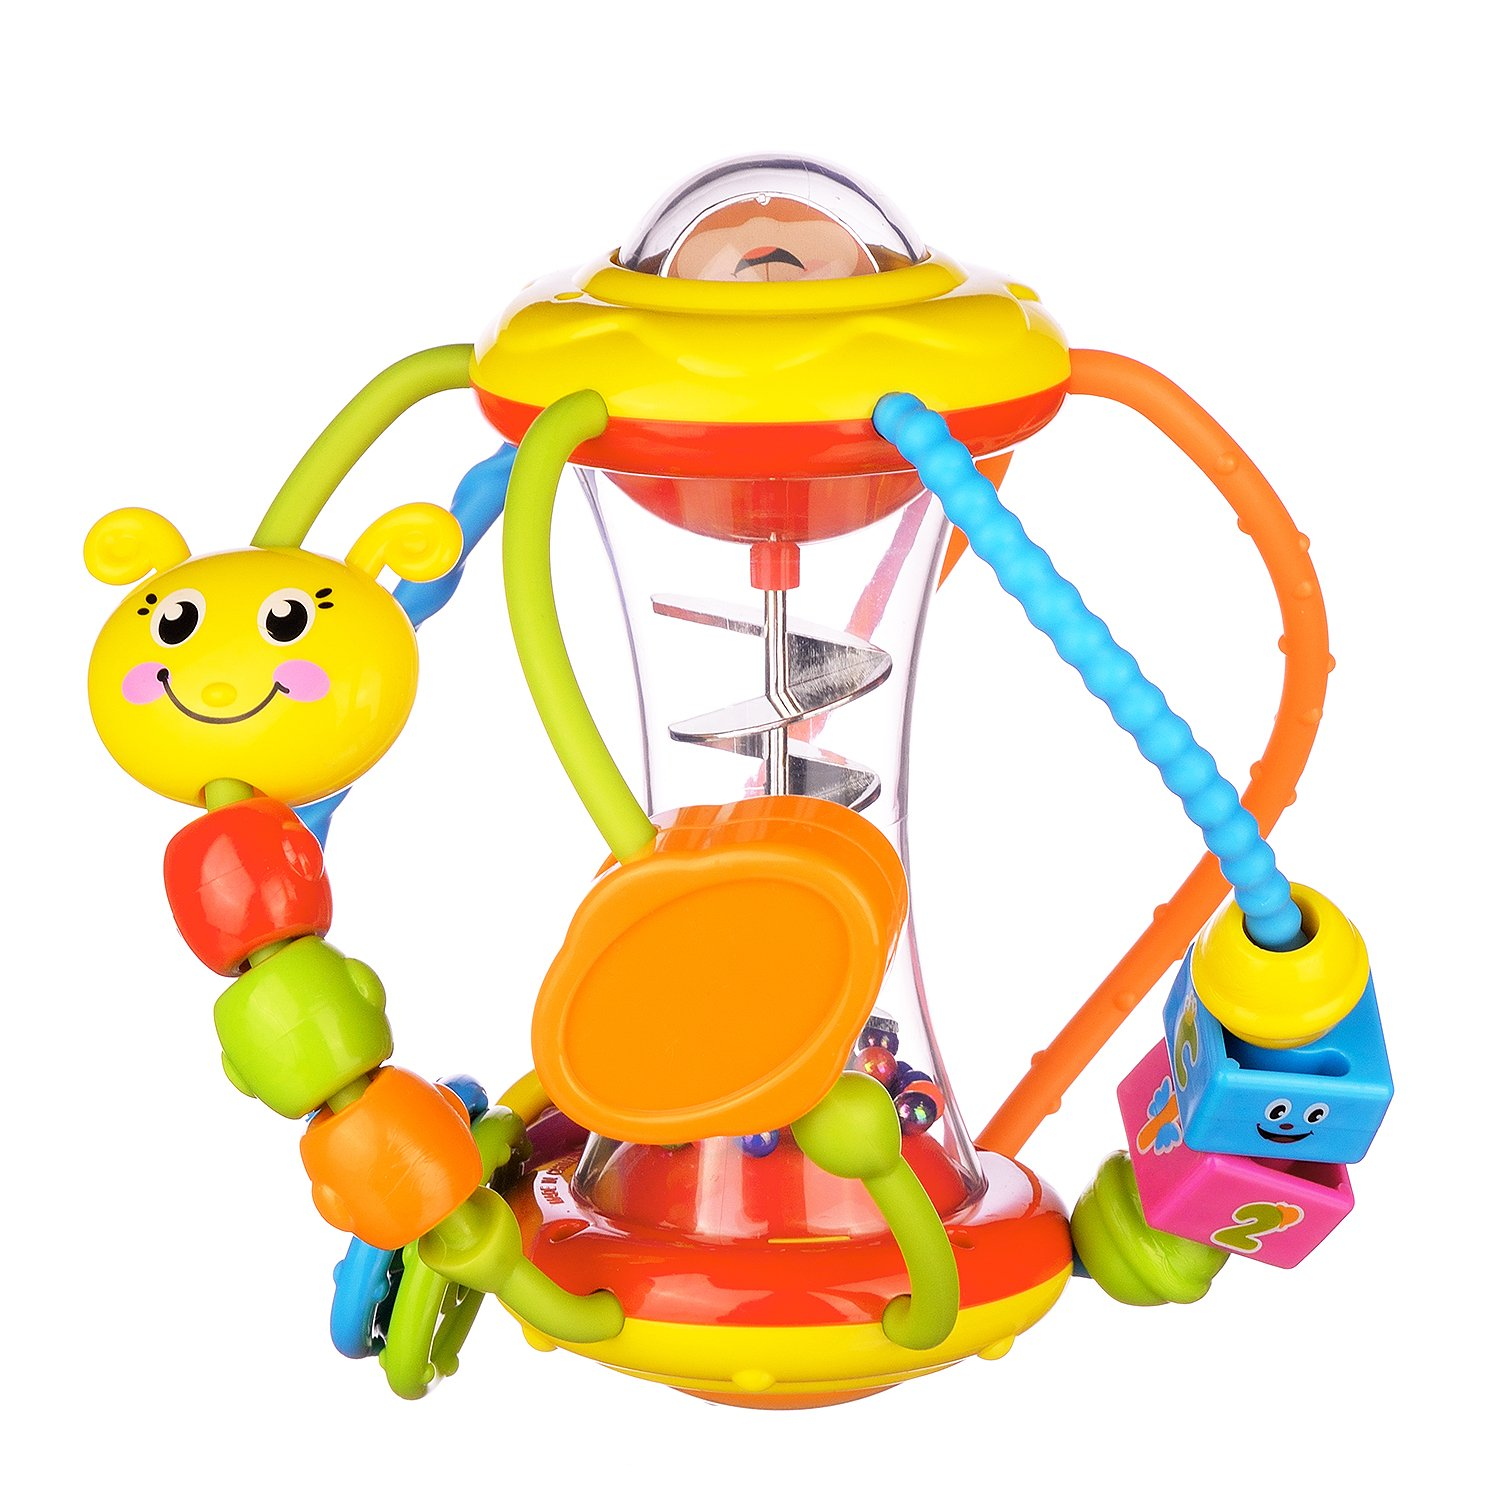 Cheap Best Baby Toys 6 Months Find Best Baby Toys 6 Months Deals On